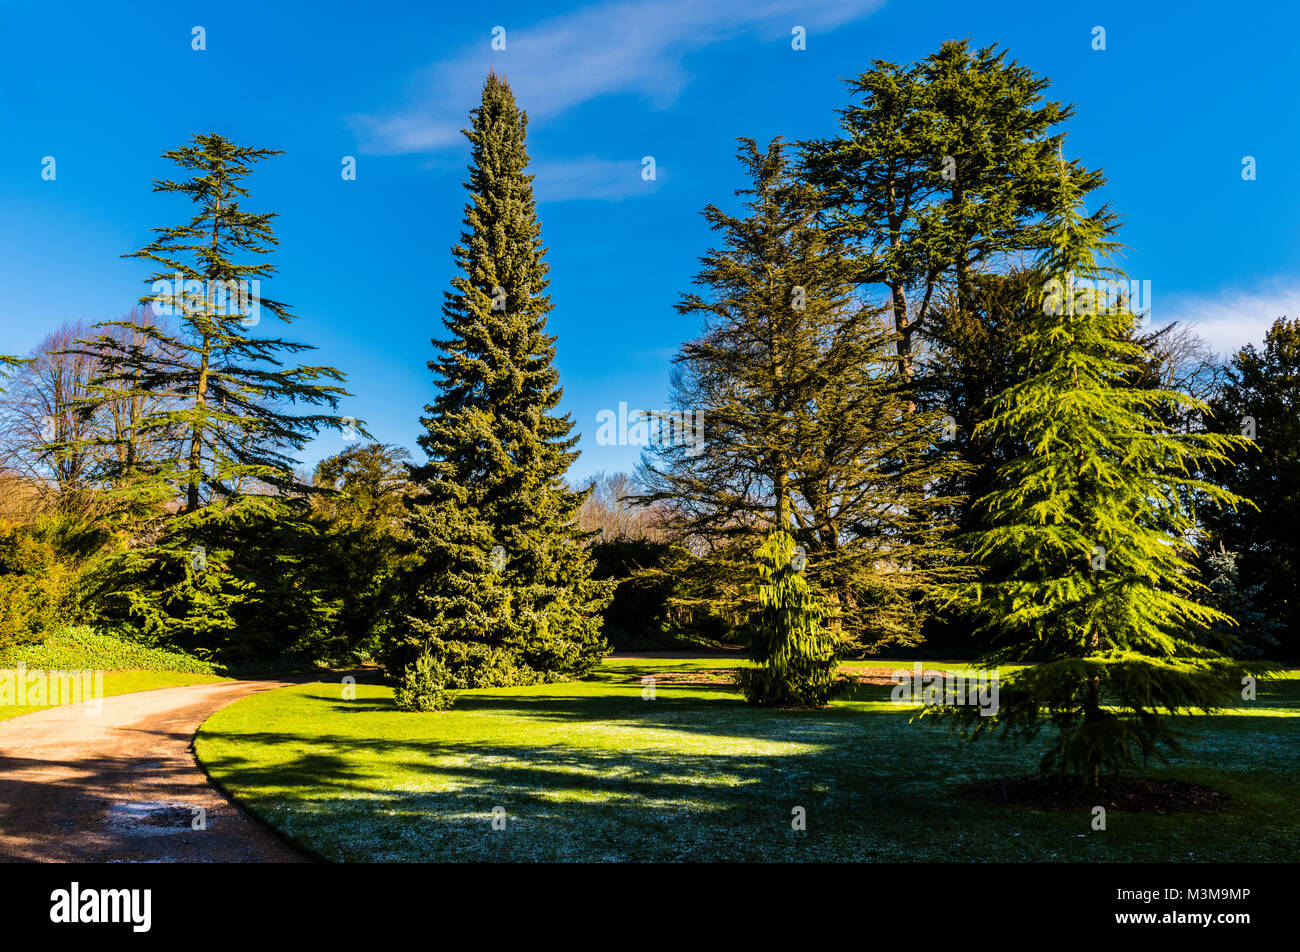 Gravel pathway and trees at Hughenden, Buckinghamshire, UK - Stock Image